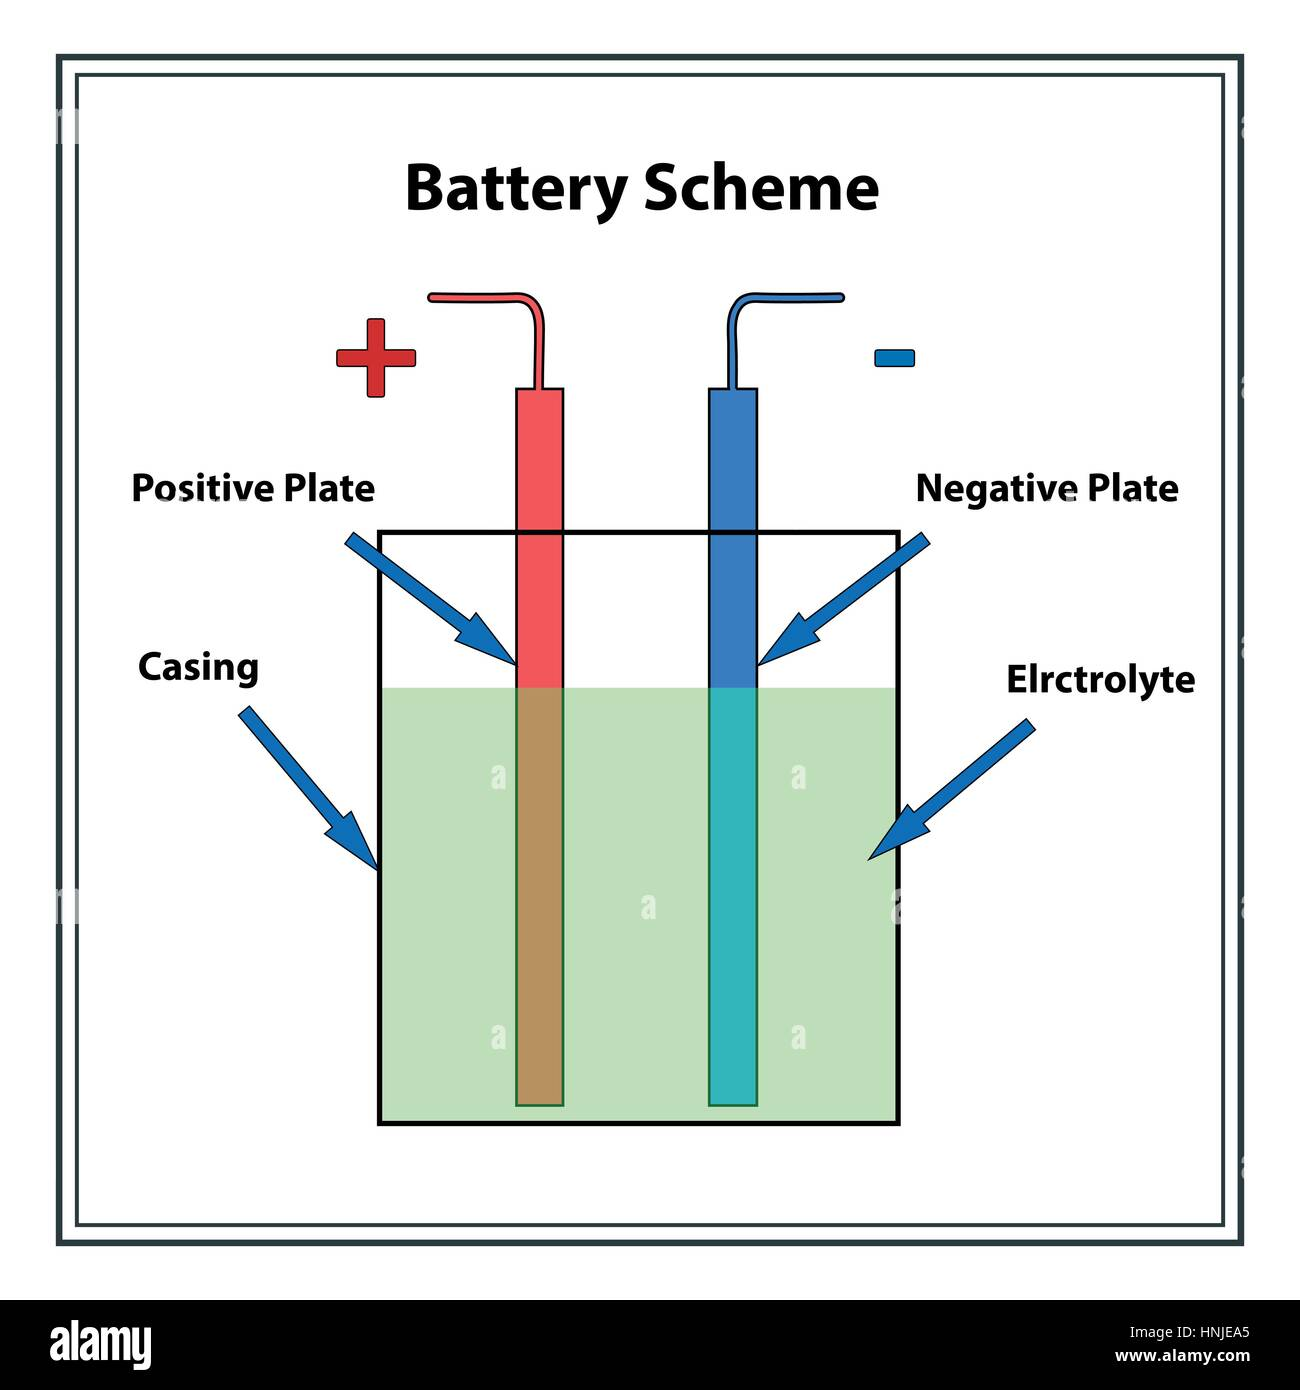 Galvanic Battery Stock Photos Images Alamy Arta Cutaway Diagram Show A Typical Alkaline Cell Or With Simple Scheme The Illustration Shows Main Elements Of Image